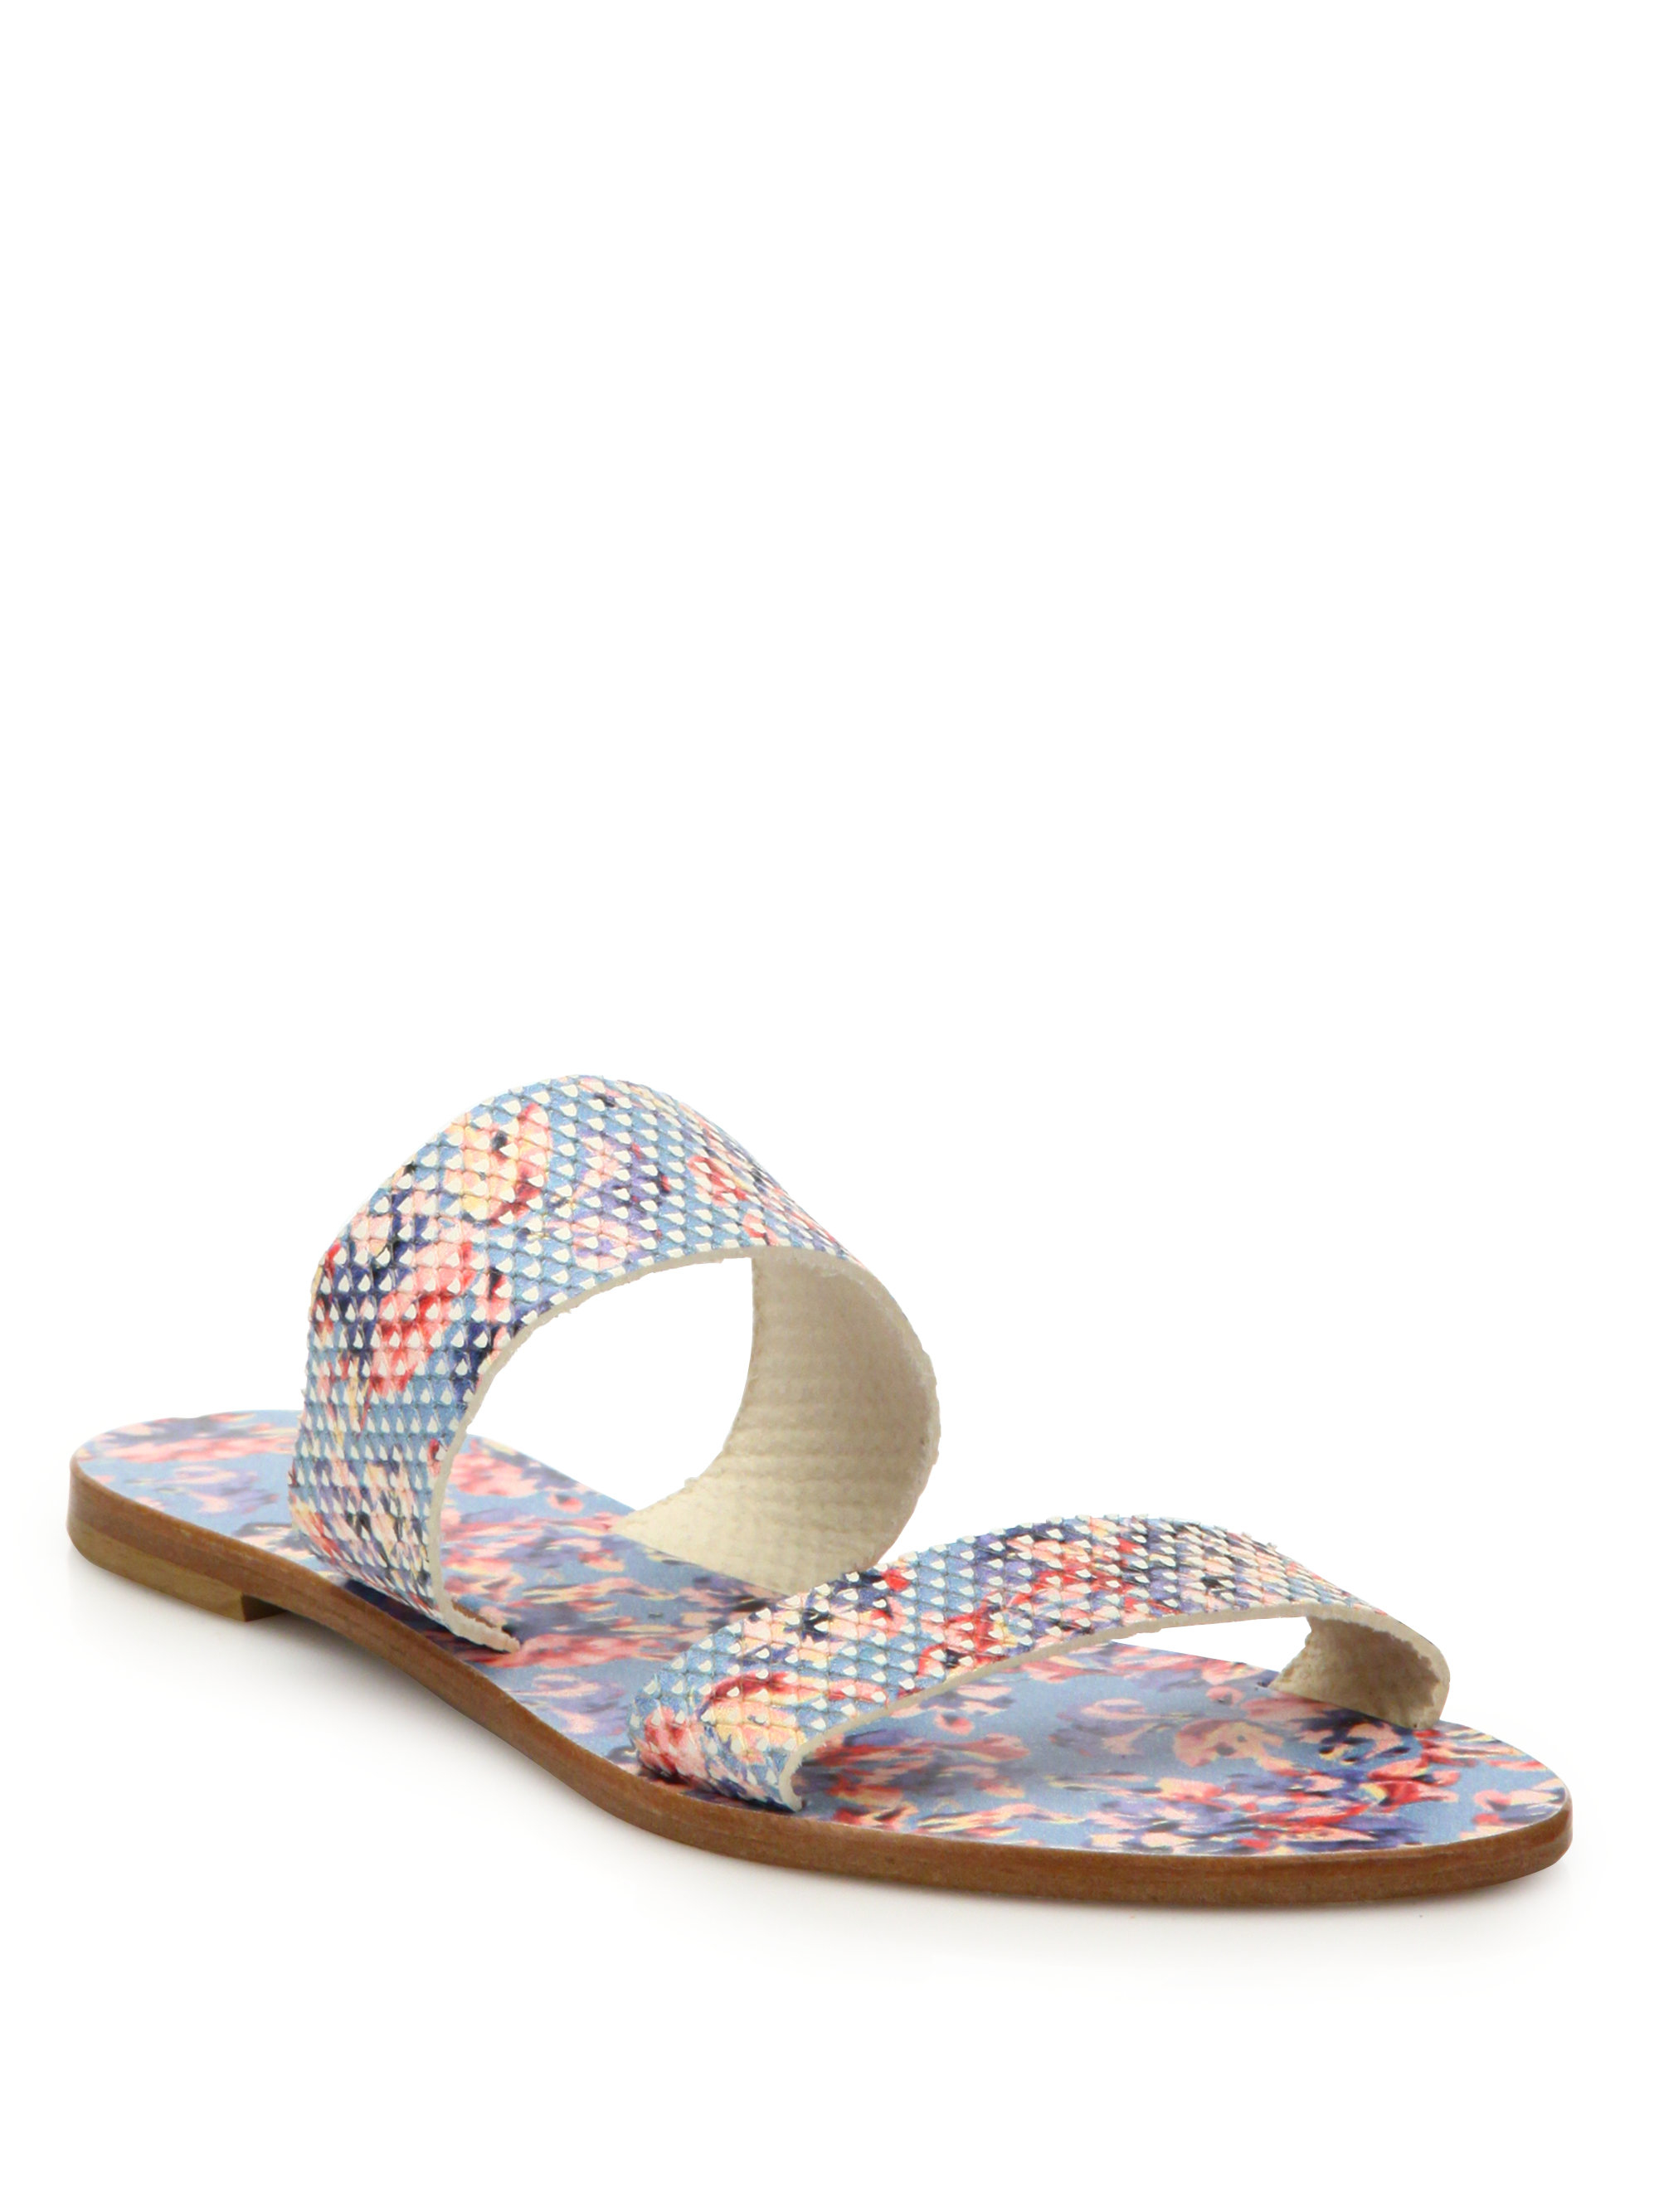 704d53481244 Lyst - Joie Sable Floral-print Leather Slides in Blue